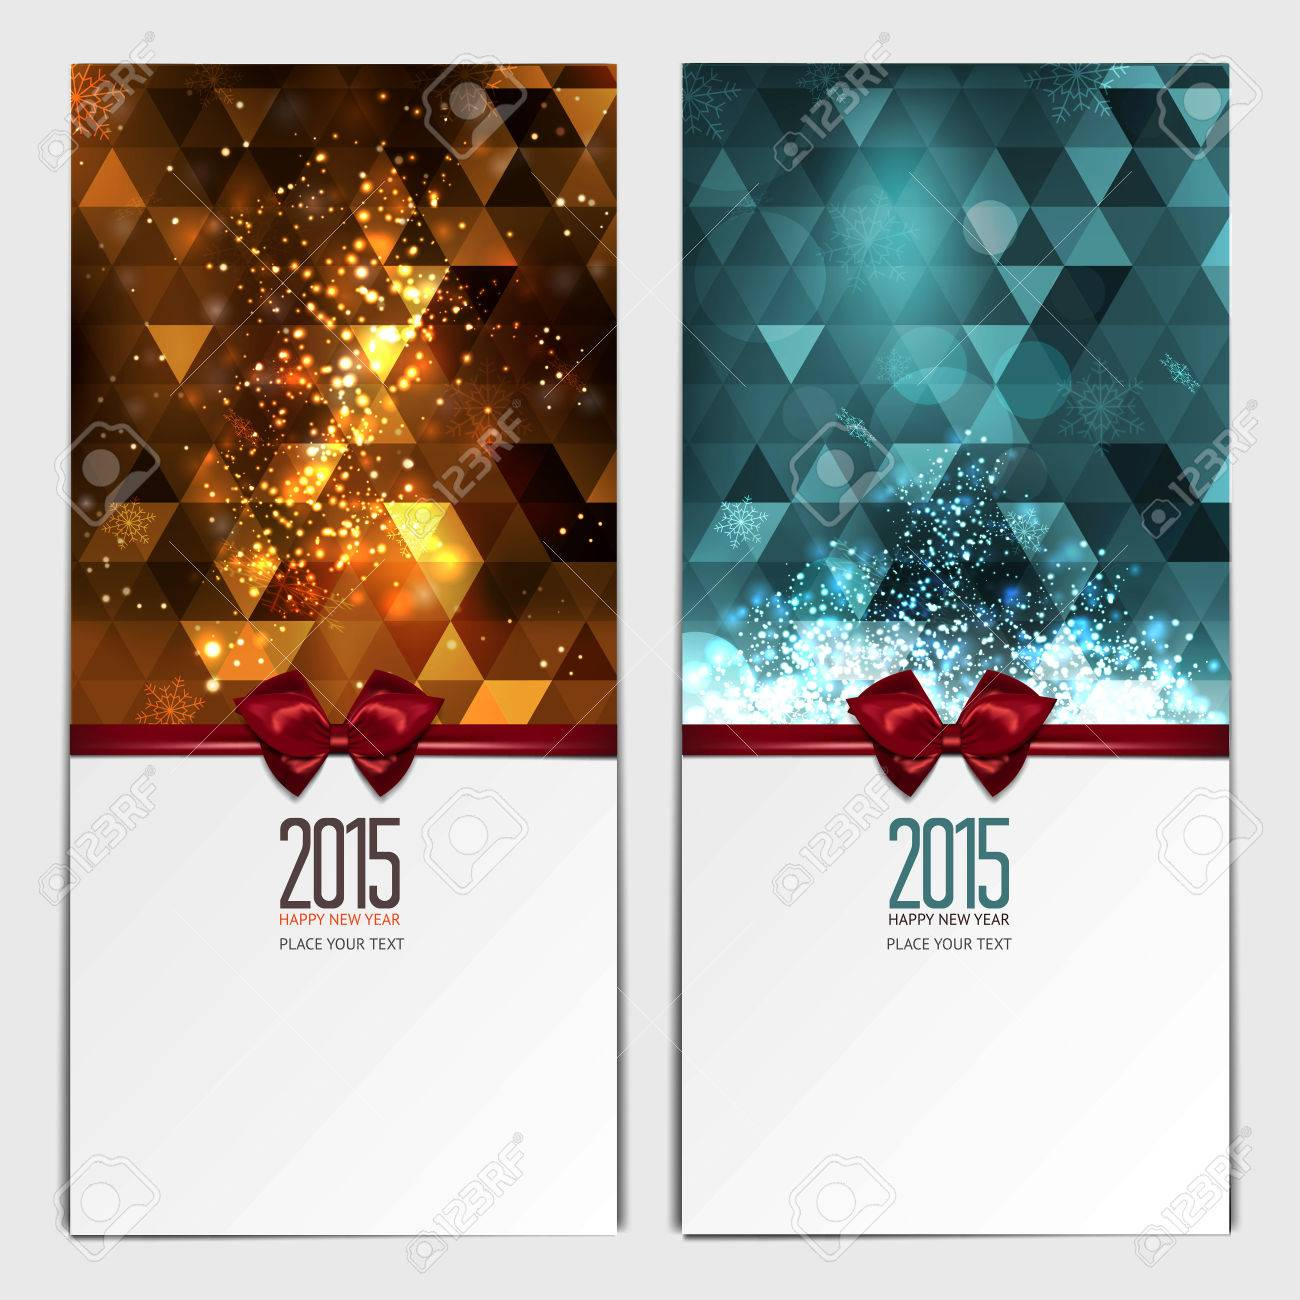 Christmas greeting cards. Place for your text message. Design in modern  Christmas colors.